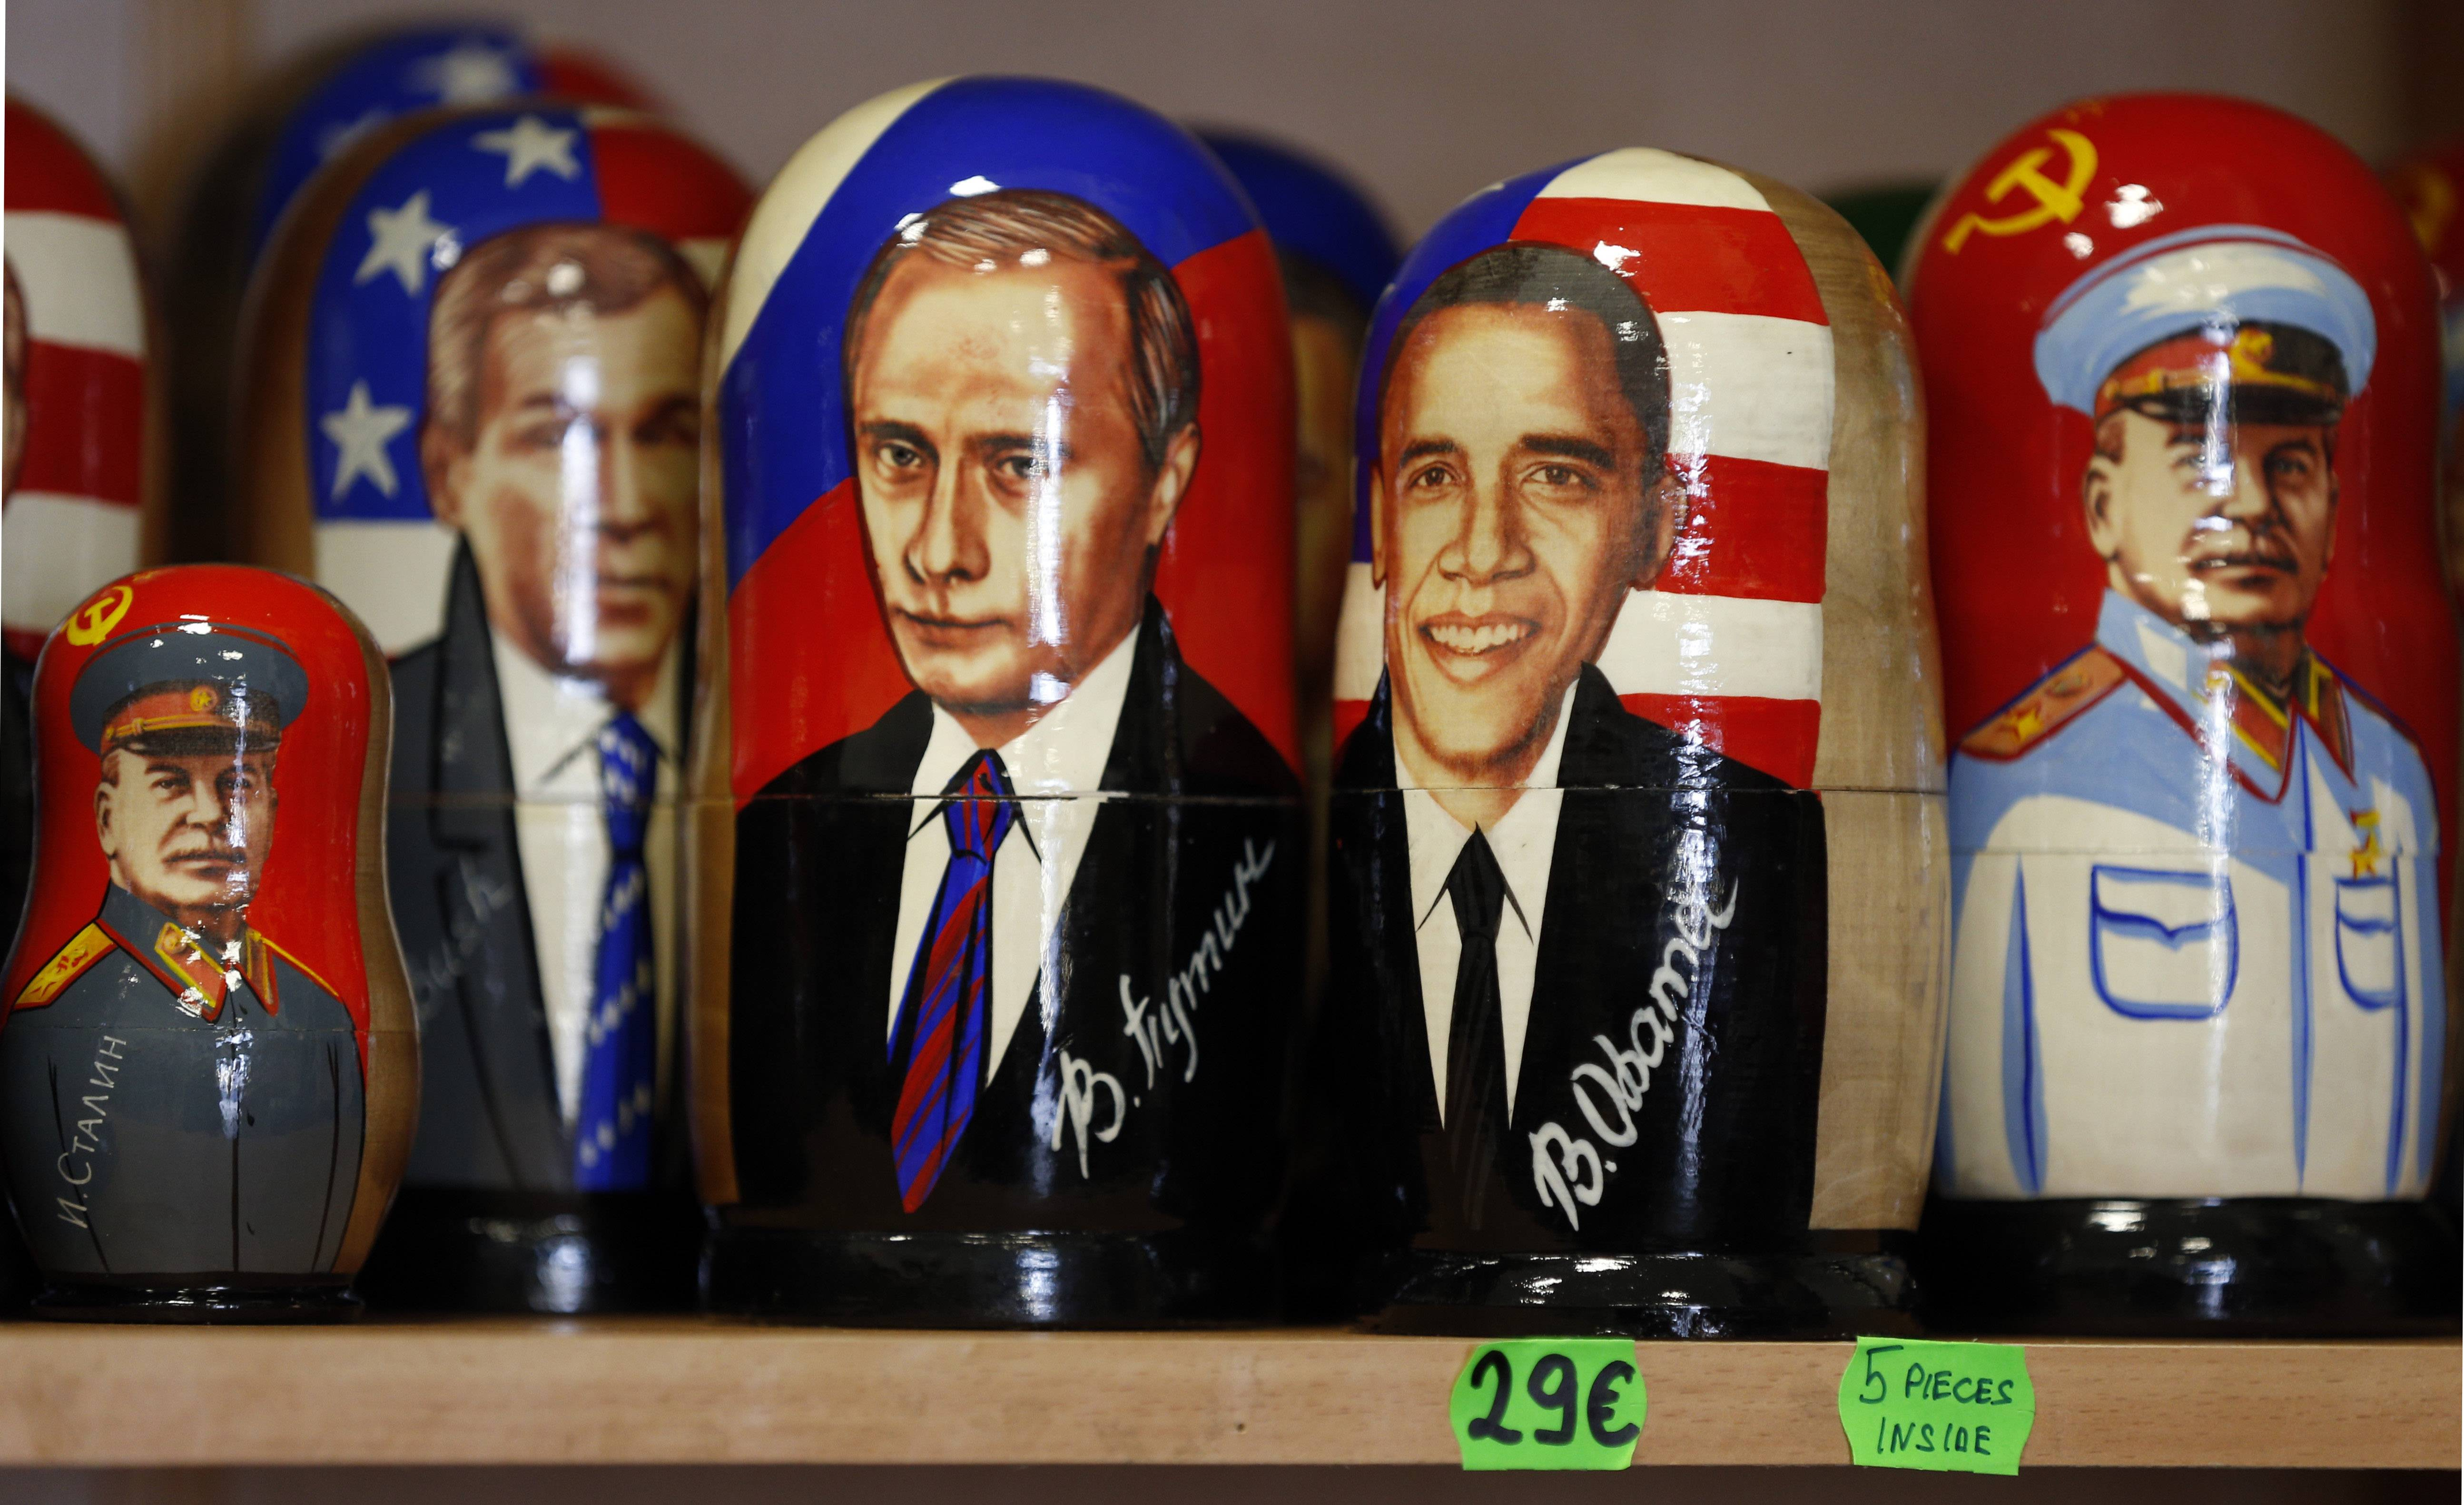 Traditional Russian Matryoshka wooden dolls depicting, from left, Soviet dictator Joseph Stalin, U.S. President George W. Bush, Russian President Vladimir Putin, U.S. President Barack Obama and Stalin again and are seen on a display in Tallinn, Estonia, Tuesday ahead of Obama's visit there.